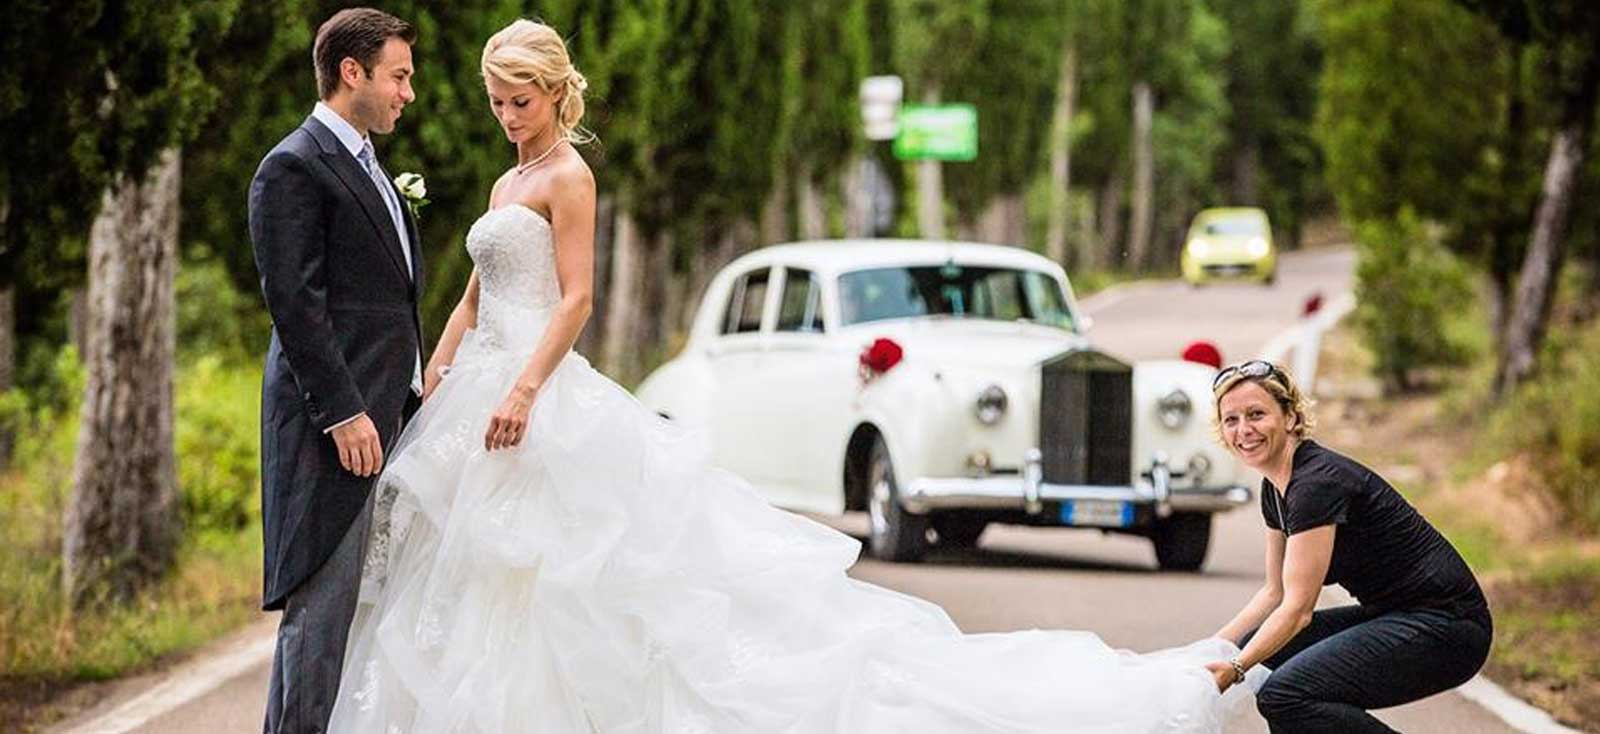 Wedding Planning: Why Do Wedding Planners Cost So Much?